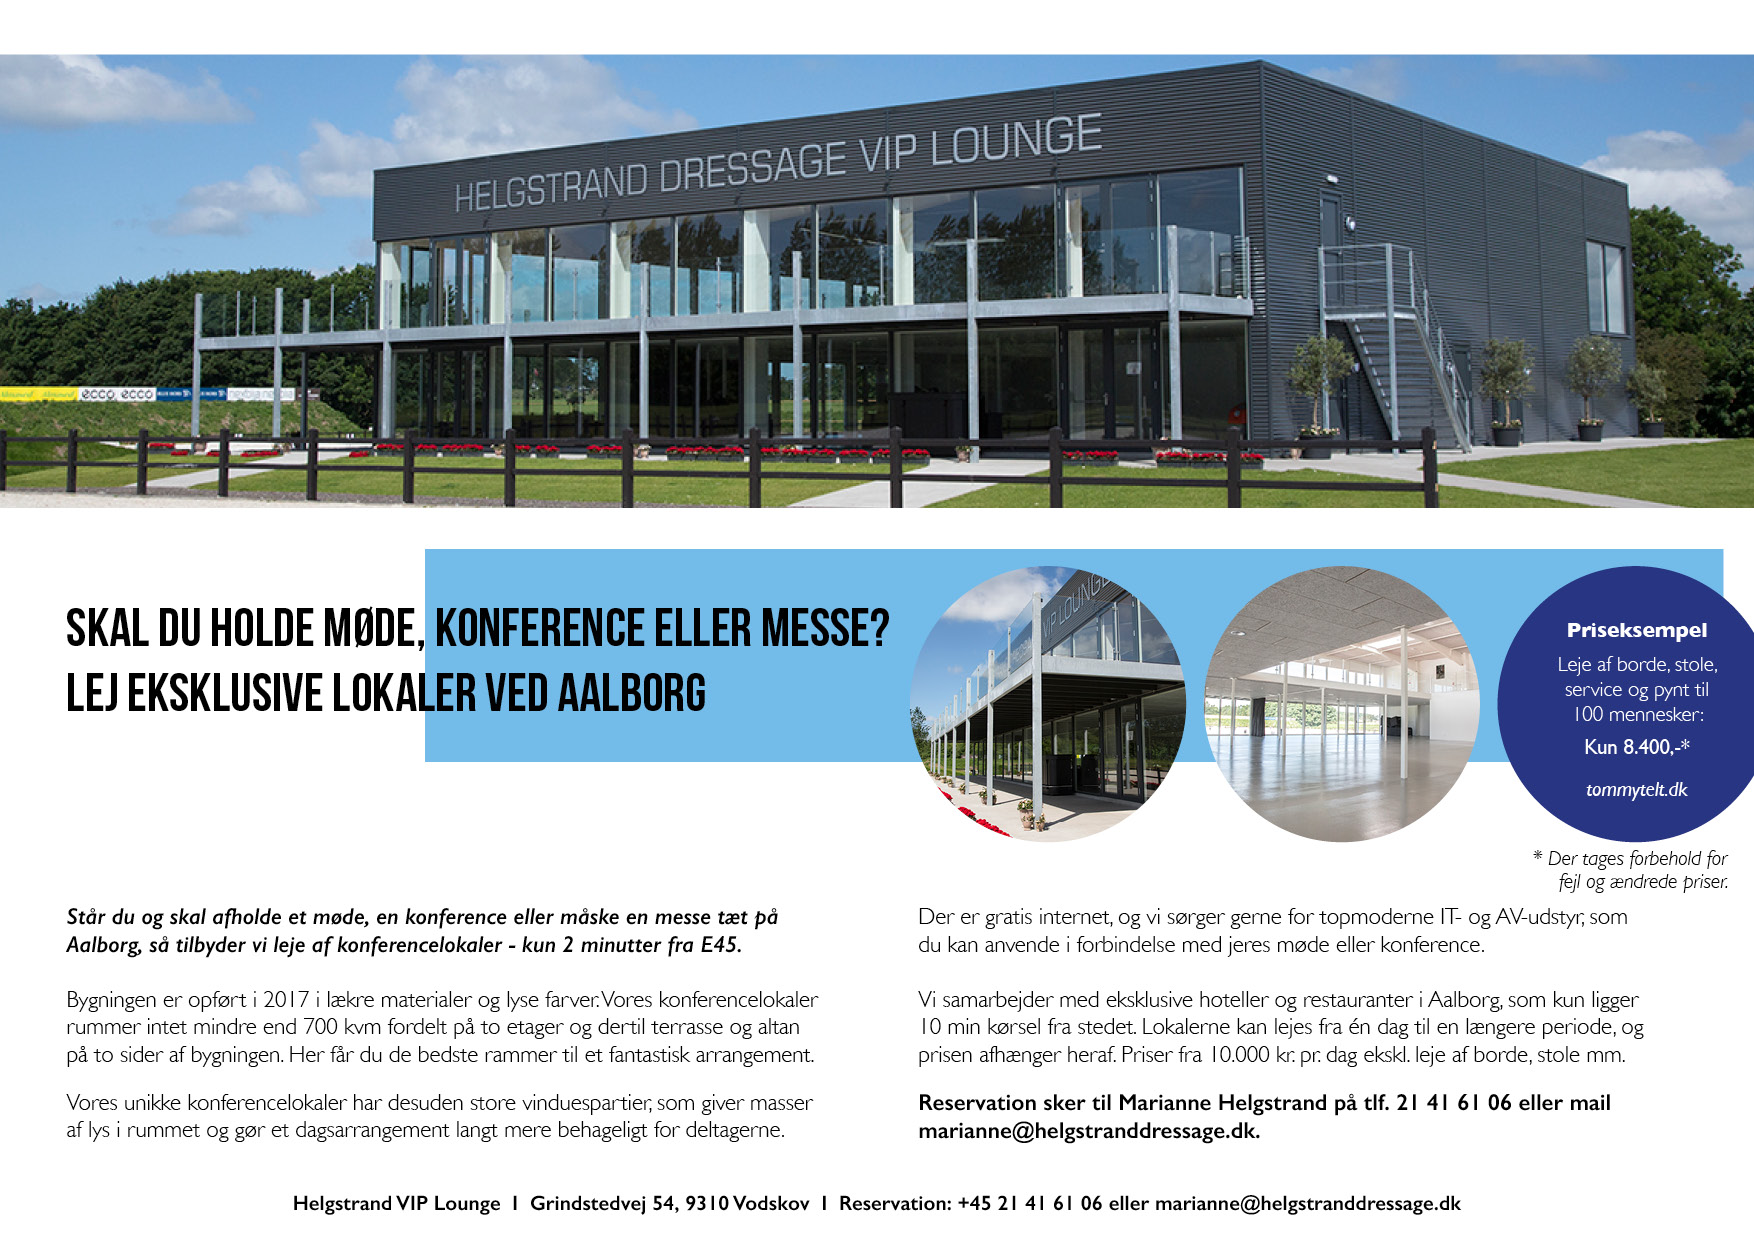 helgstrand-vip-lounge-udlejning